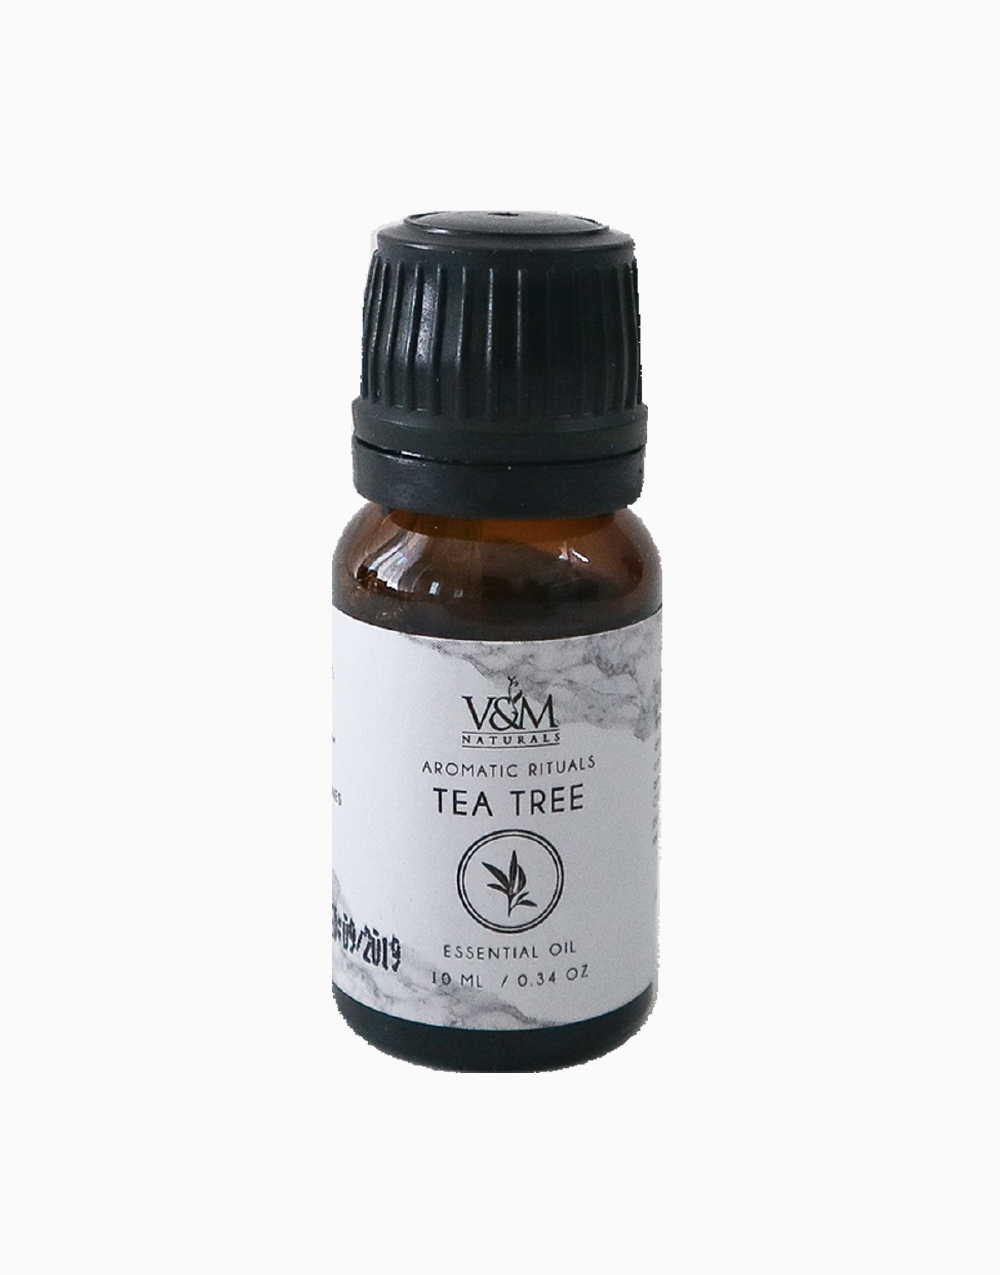 Tea Tree Essential Oil by V&M Naturals